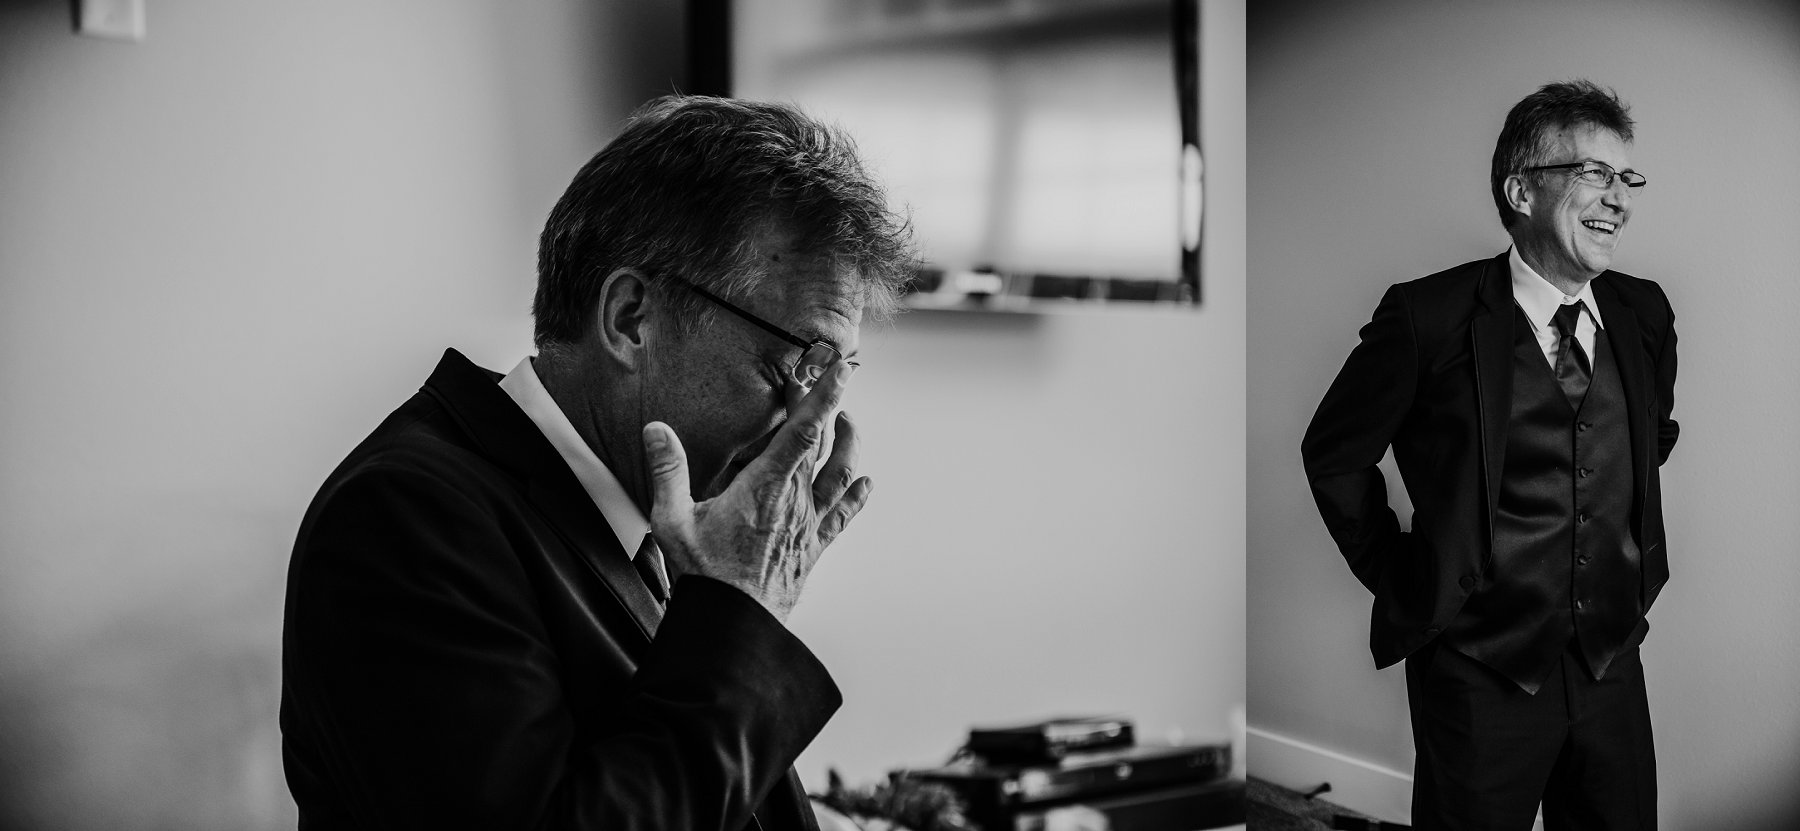 Black and white photo of Father of the Bride as he tears up and smiles as he glimpses the bride for the first time. © Merry Ohler Creative, 2019. Photo by Merry Ohler, who is the best wedding photographer in Kansas City.